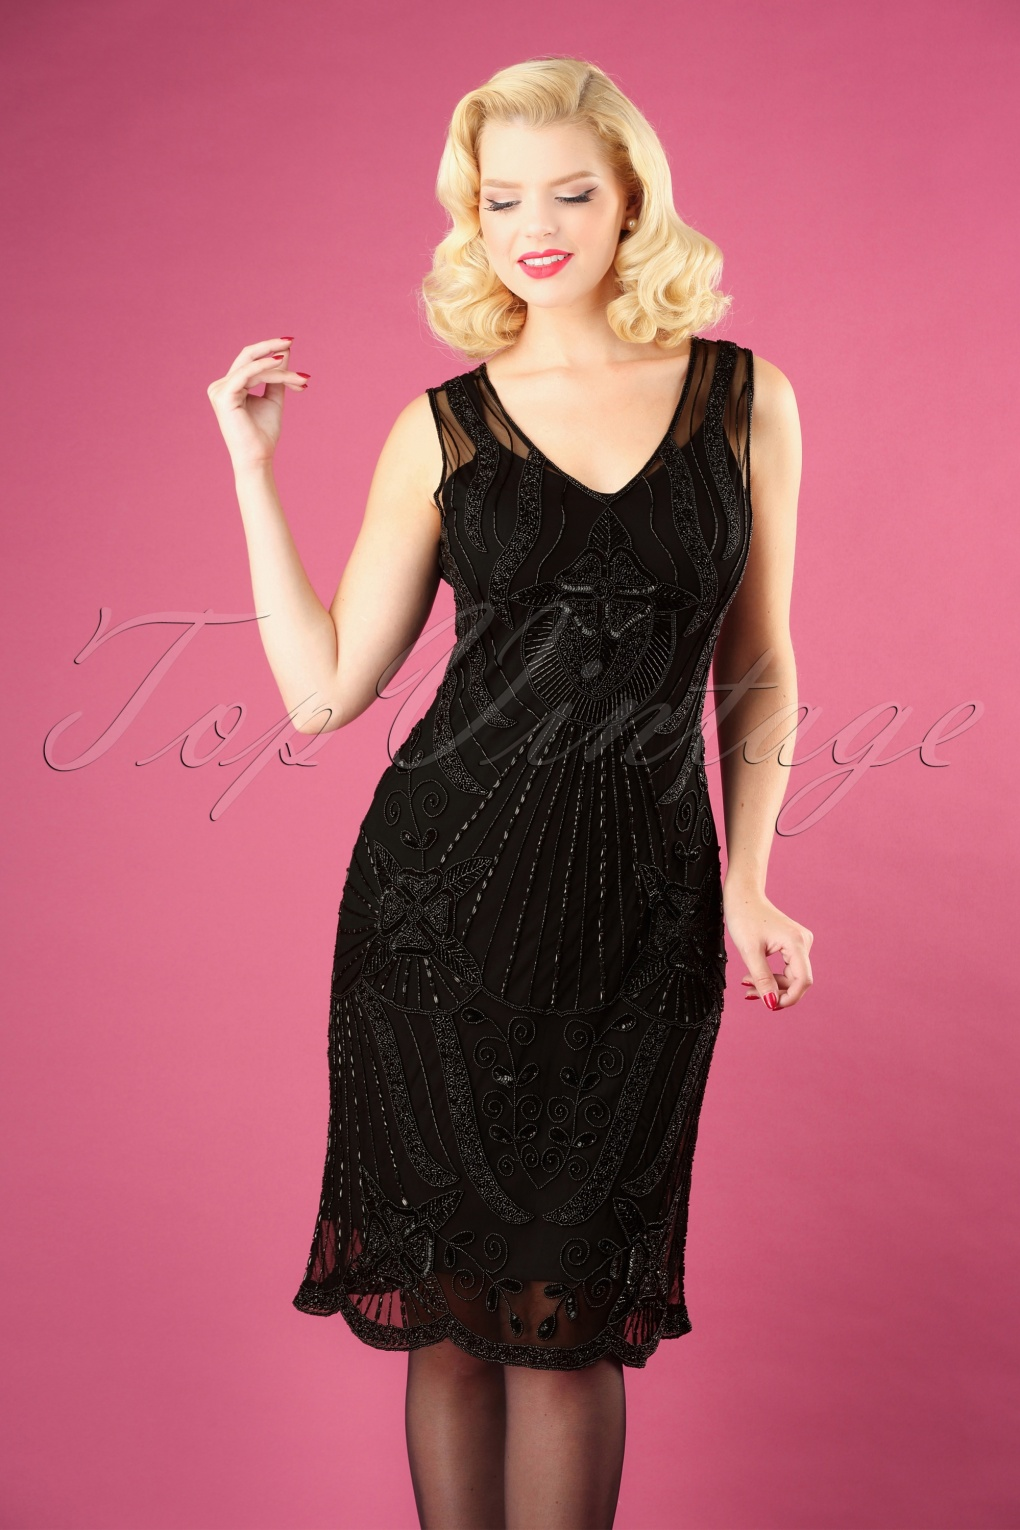 1920s Downton Abbey Dresses 20s Diana Pencil Dress in Black £116.00 AT vintagedancer.com